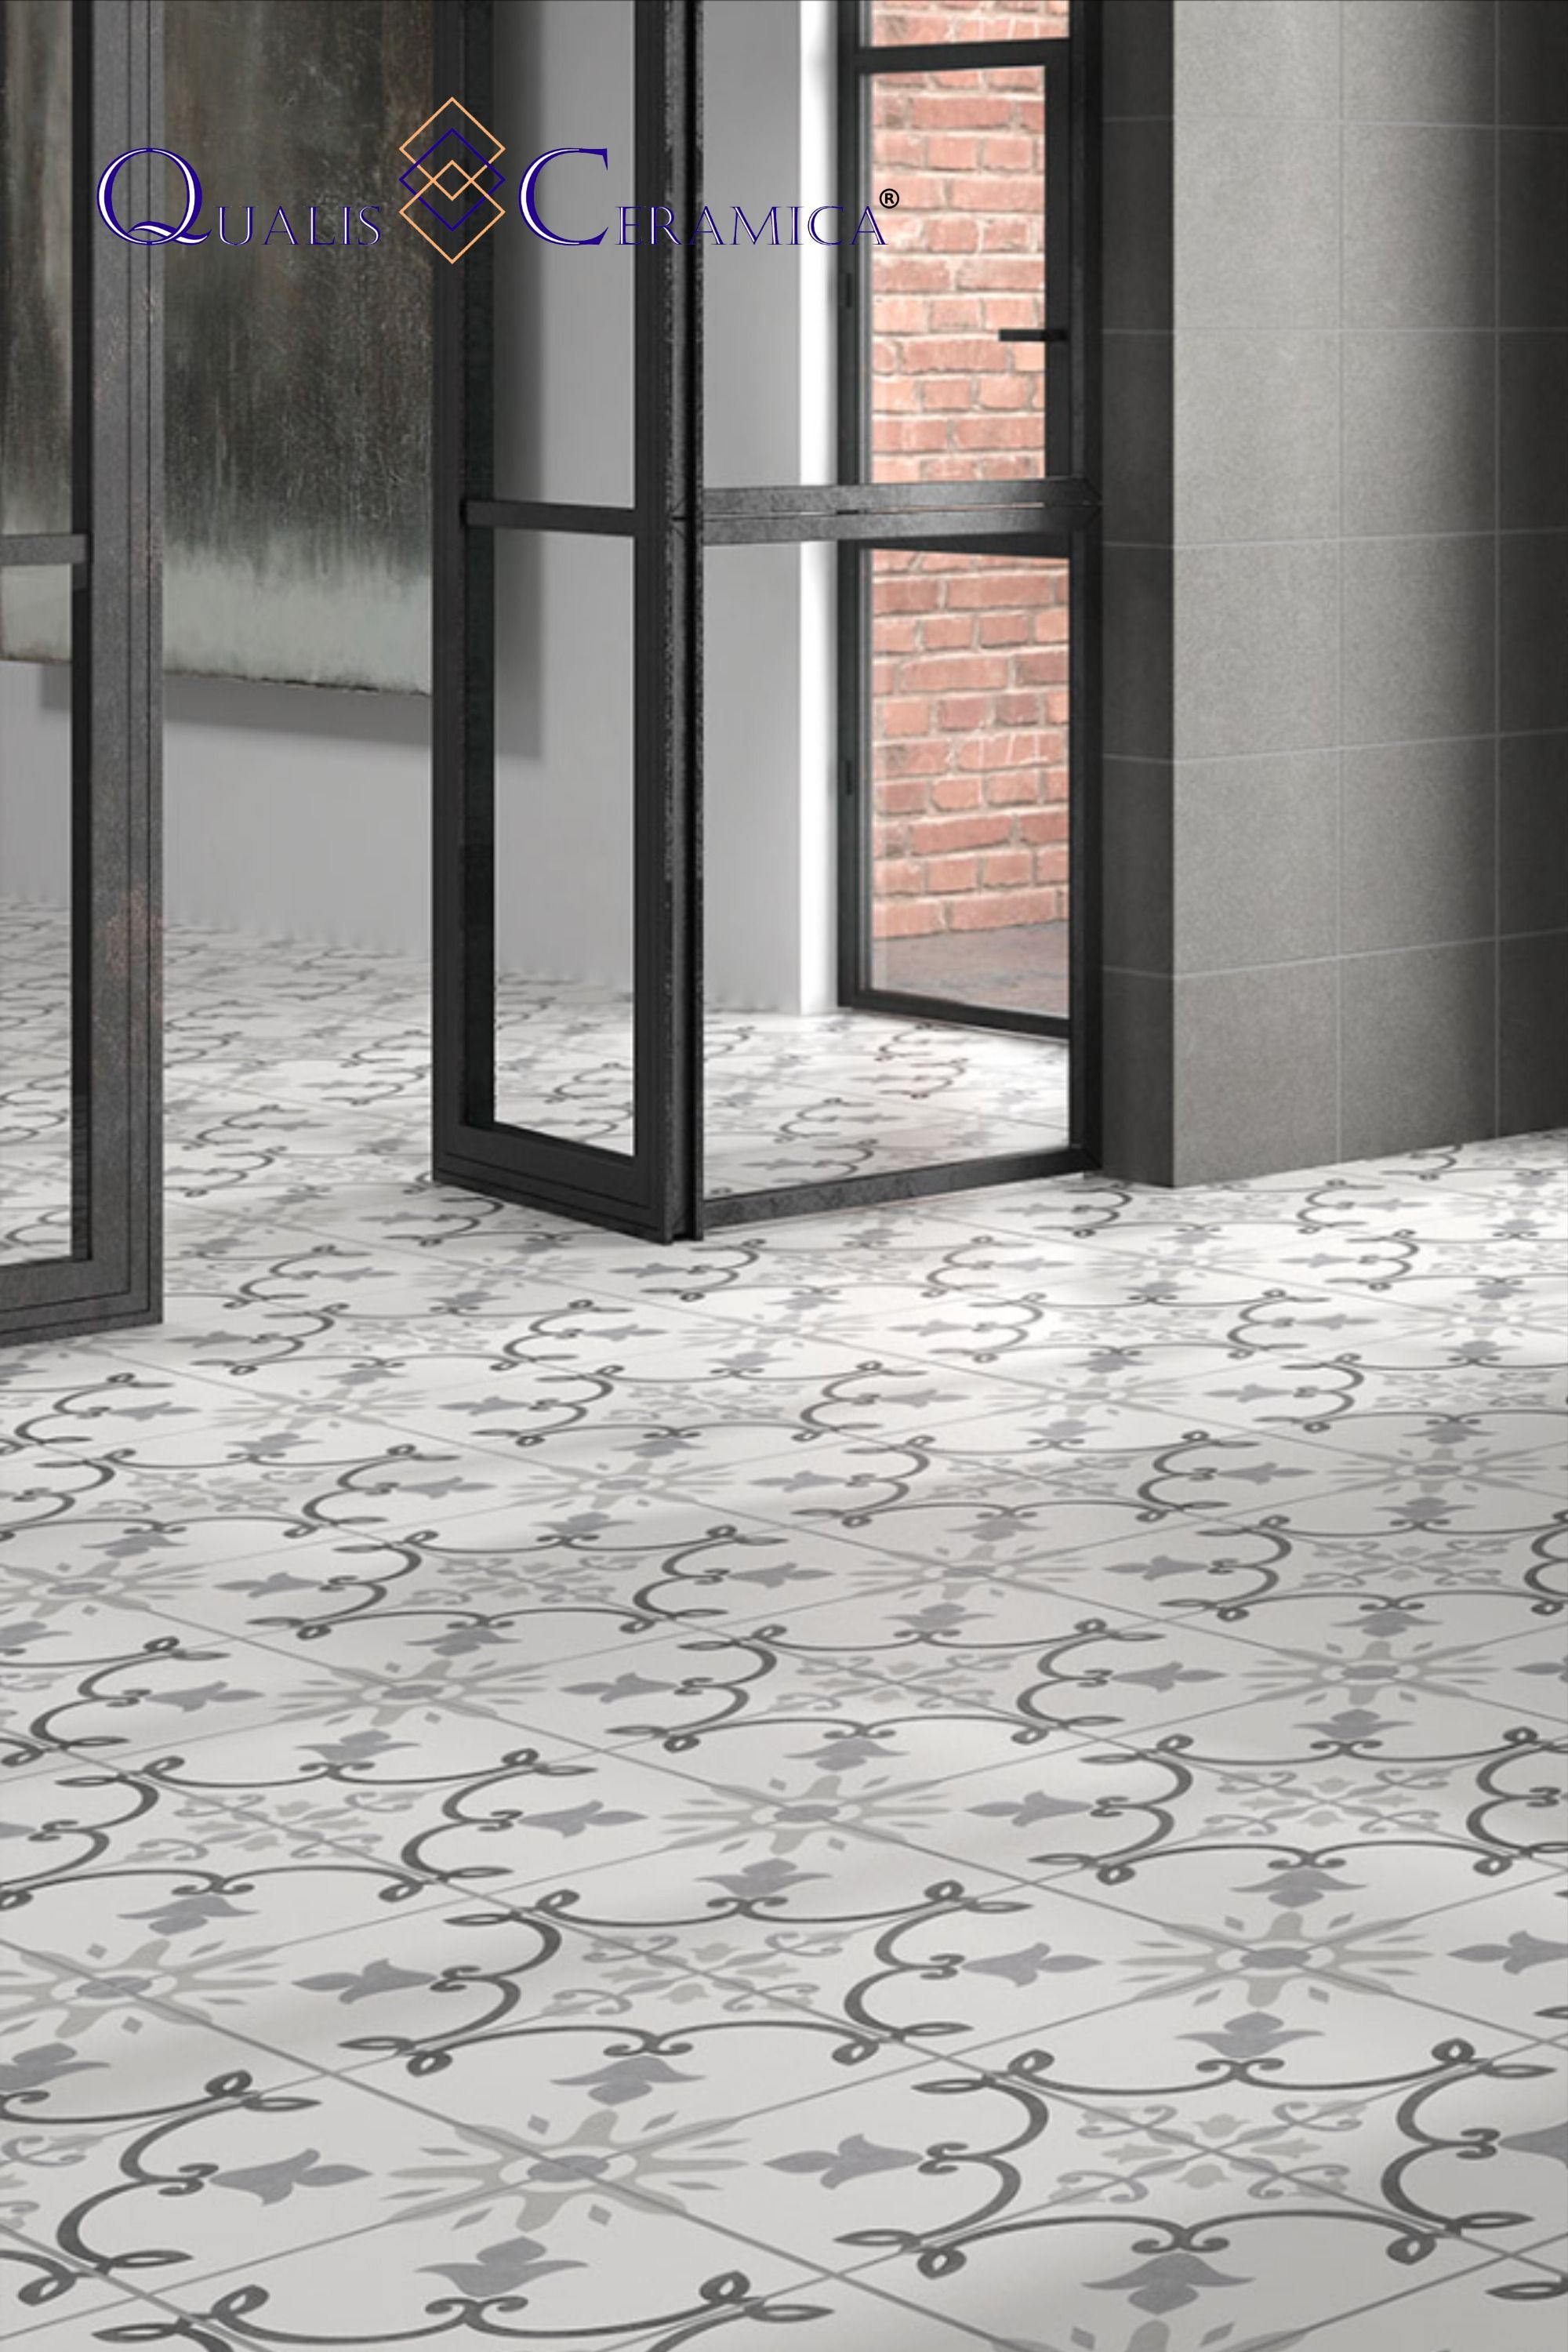 Master Bath Floor Tile Qualis Ceramica Gibraltar Alameda Gris 10x10 Cement Look Porcelain Tile In 2020 Slip Resistant Tiles Tile Floor Entryway Flooring